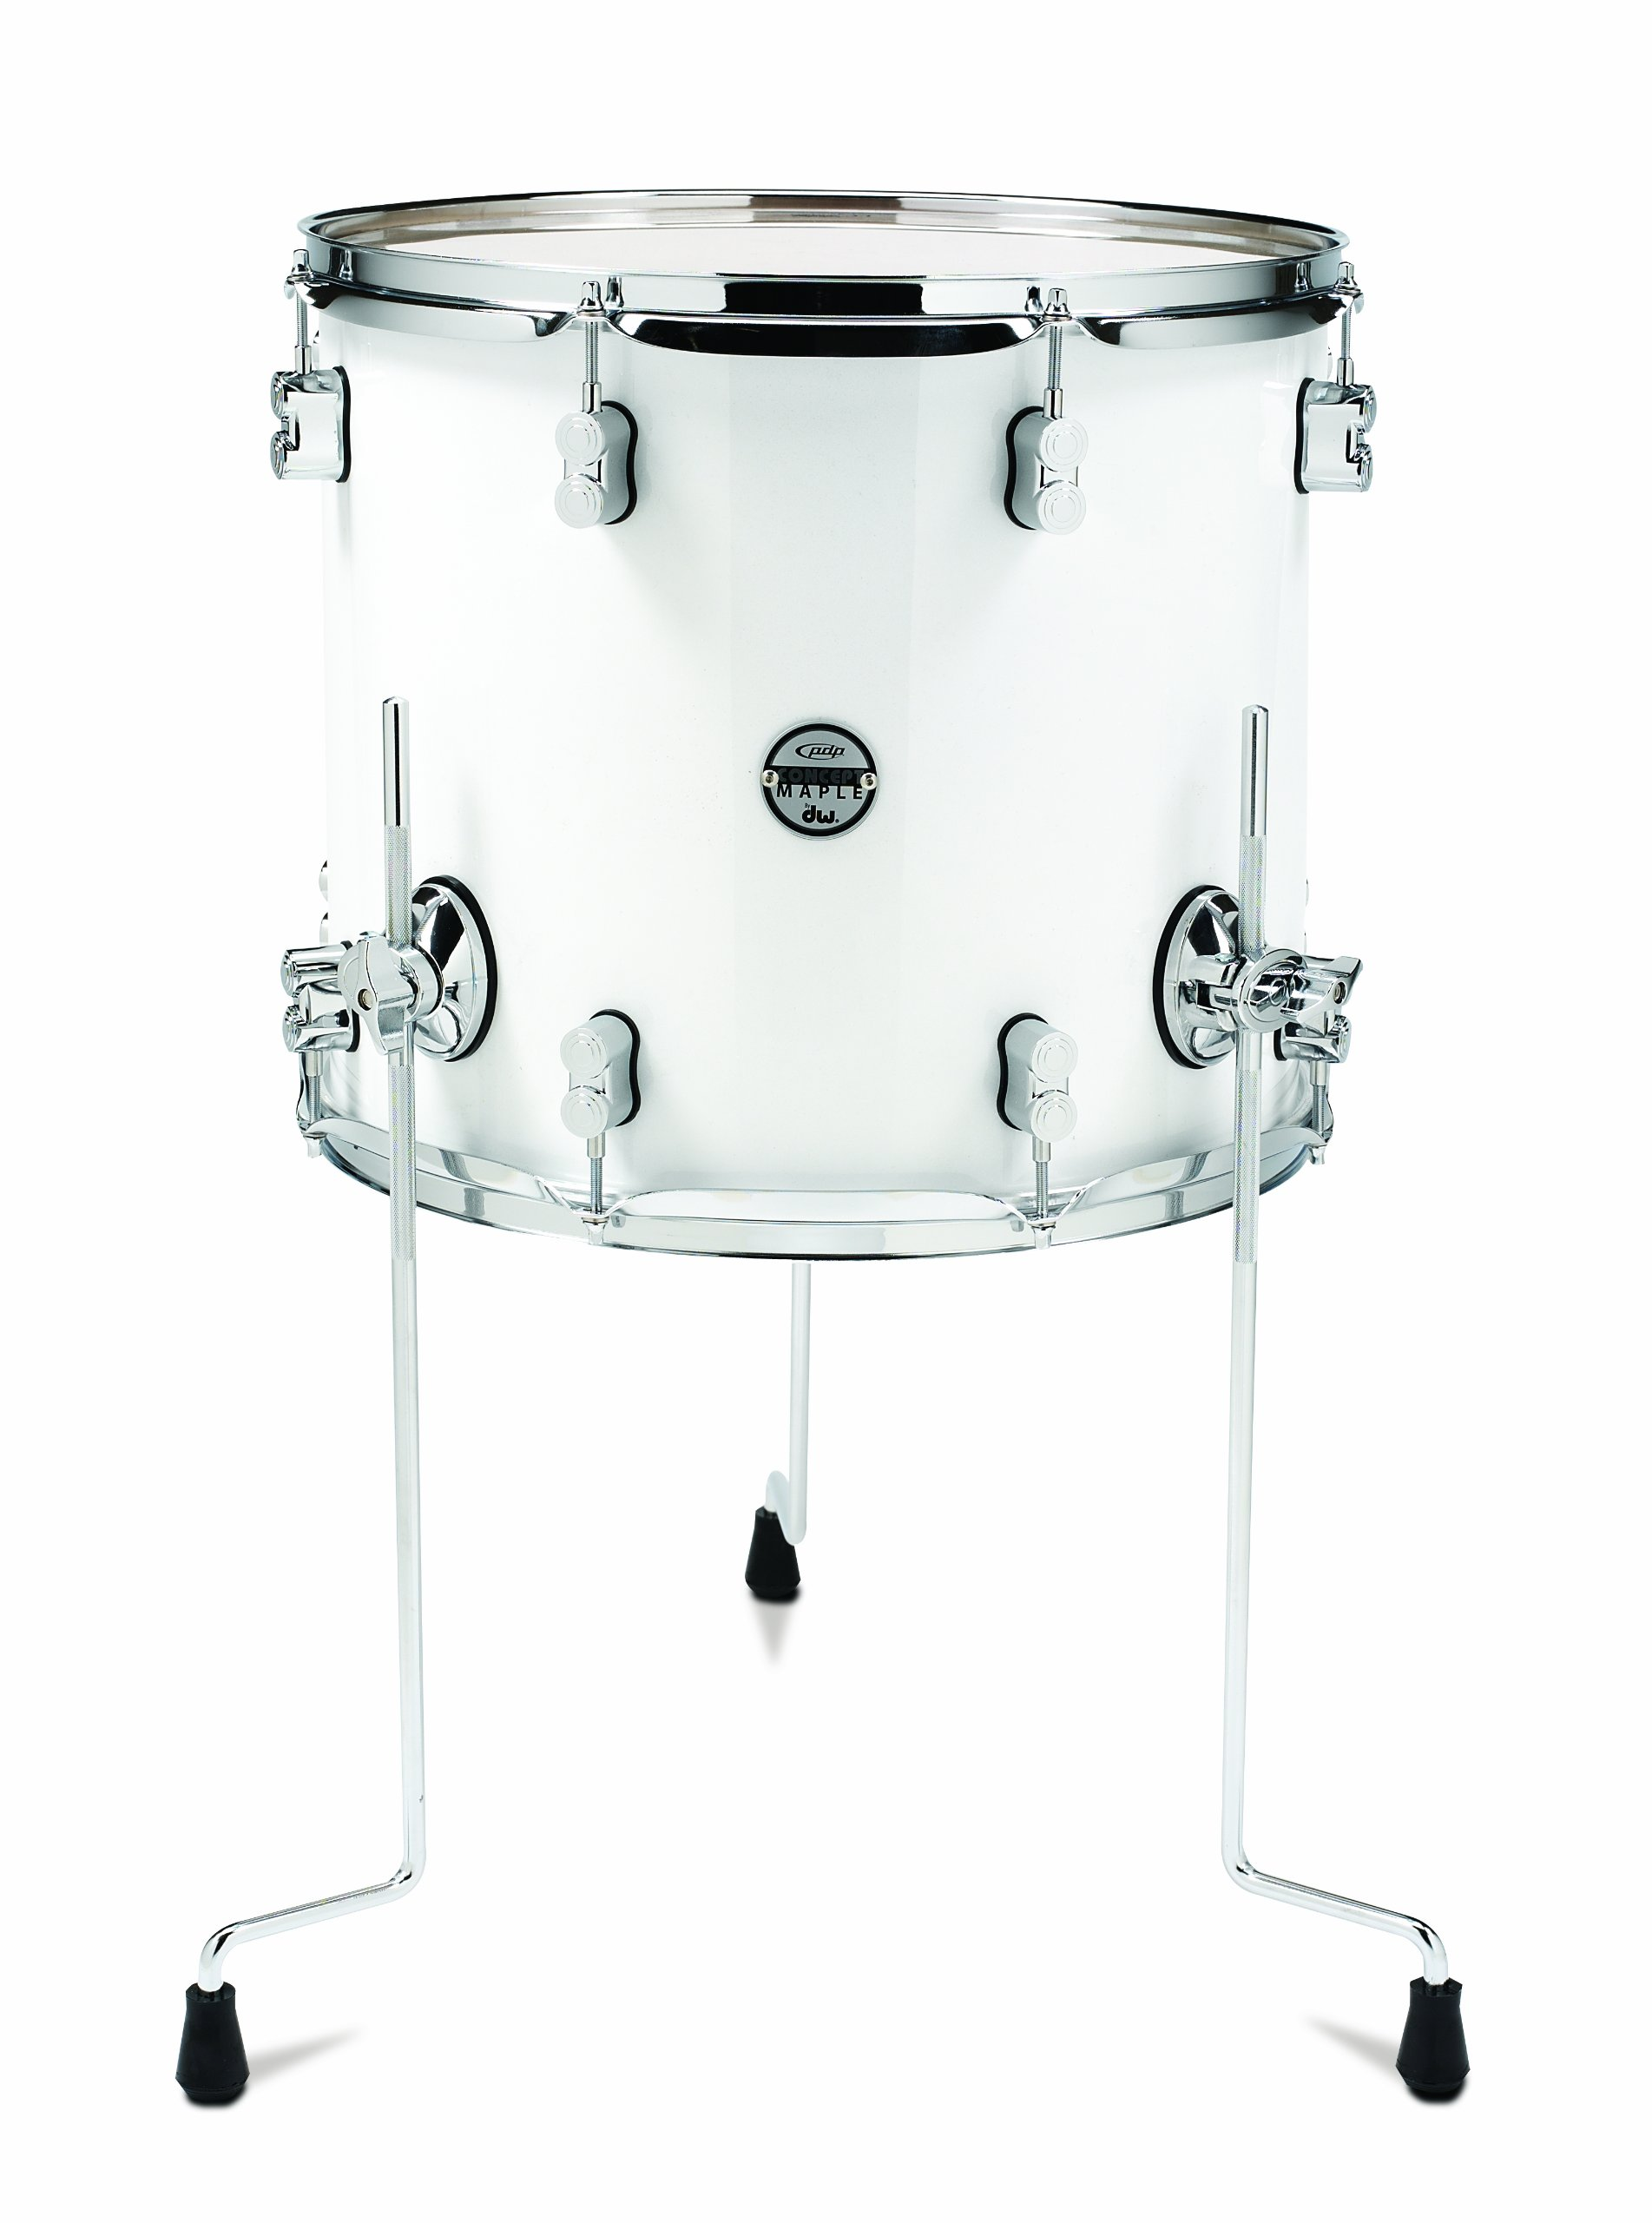 Pacific Drums PDCM1618TTPW 16 x 18 Inches Floor Tom with Chrome Hardware - Pearlescent White by Pacific Drums